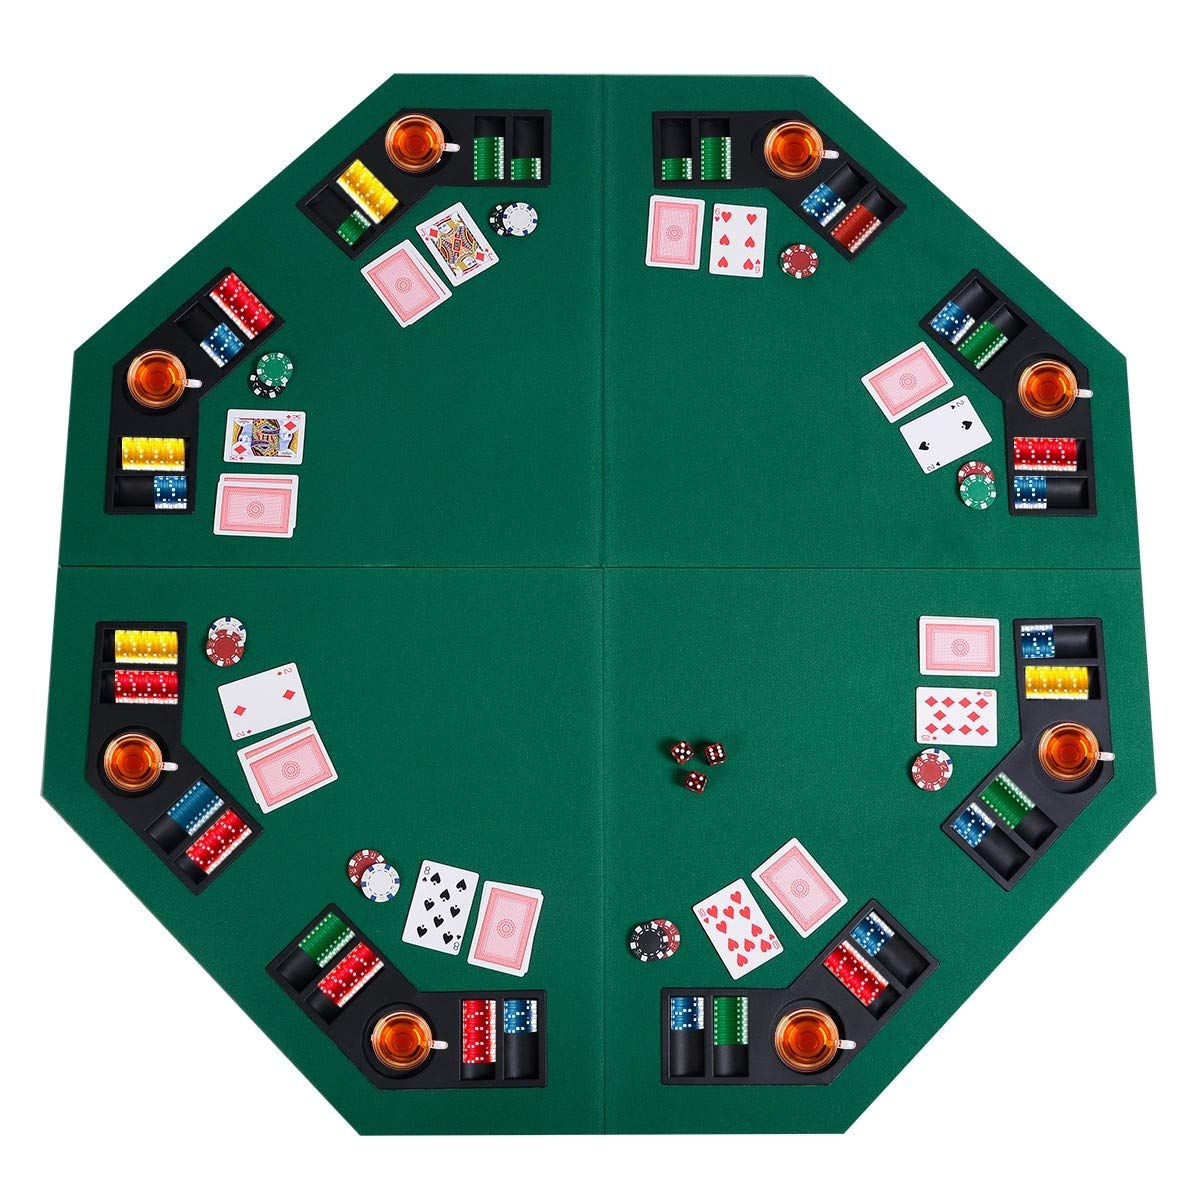 48'' Green New Home 8 Players Octagon Fourfold Poker Table Top Portable Game Space Saving Durable Long Lasting Use by USA_Best_Seller